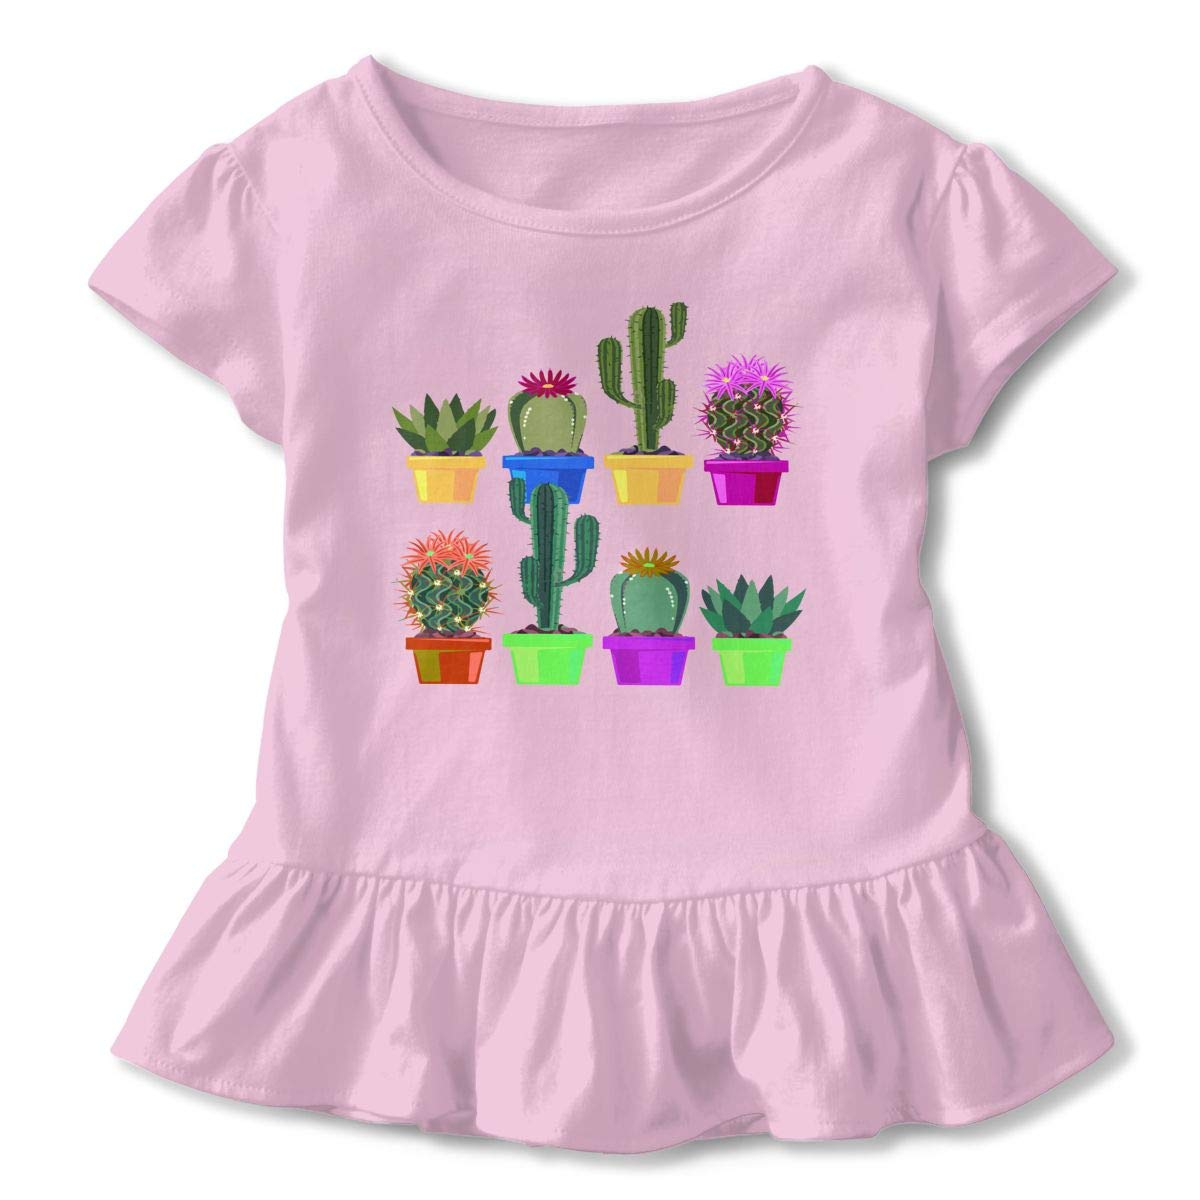 Cheng Jian Bo Cactus Succulent House Plants Cacti Desert Garden1 Toddler Girls T Shirt Kids Cotton Short Sleeve Ruffle Tee